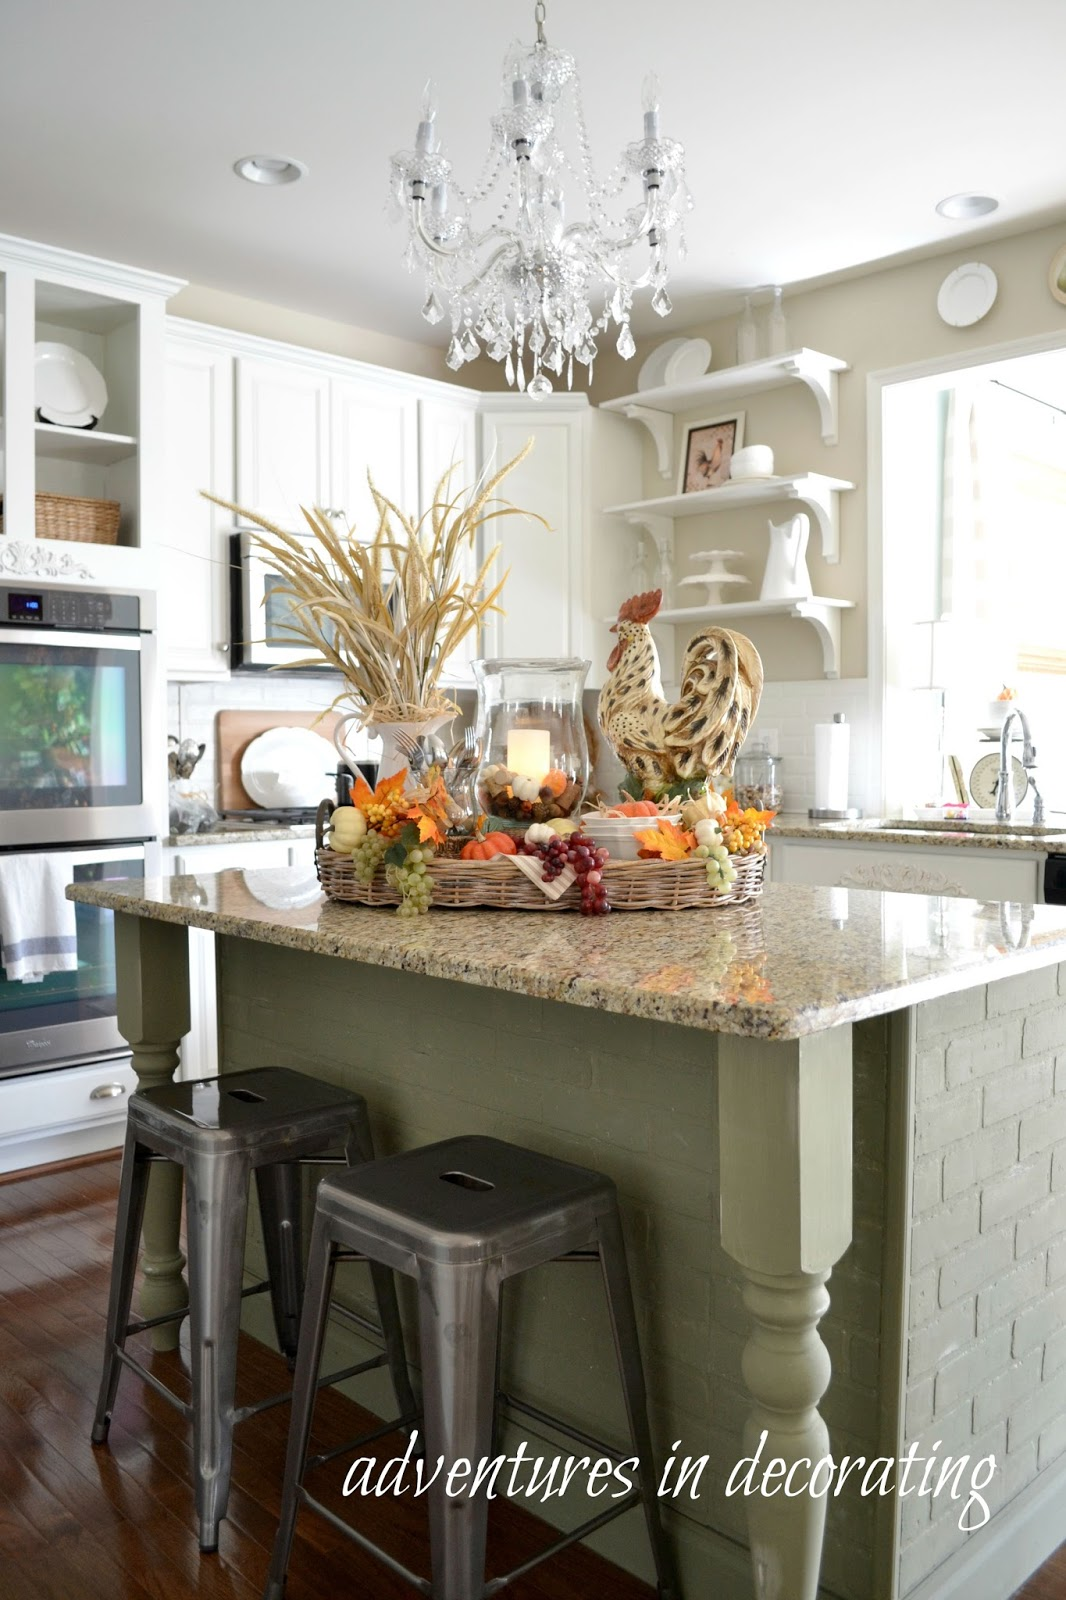 Adventures In Decorating: Our 2015 Fall Kitchen